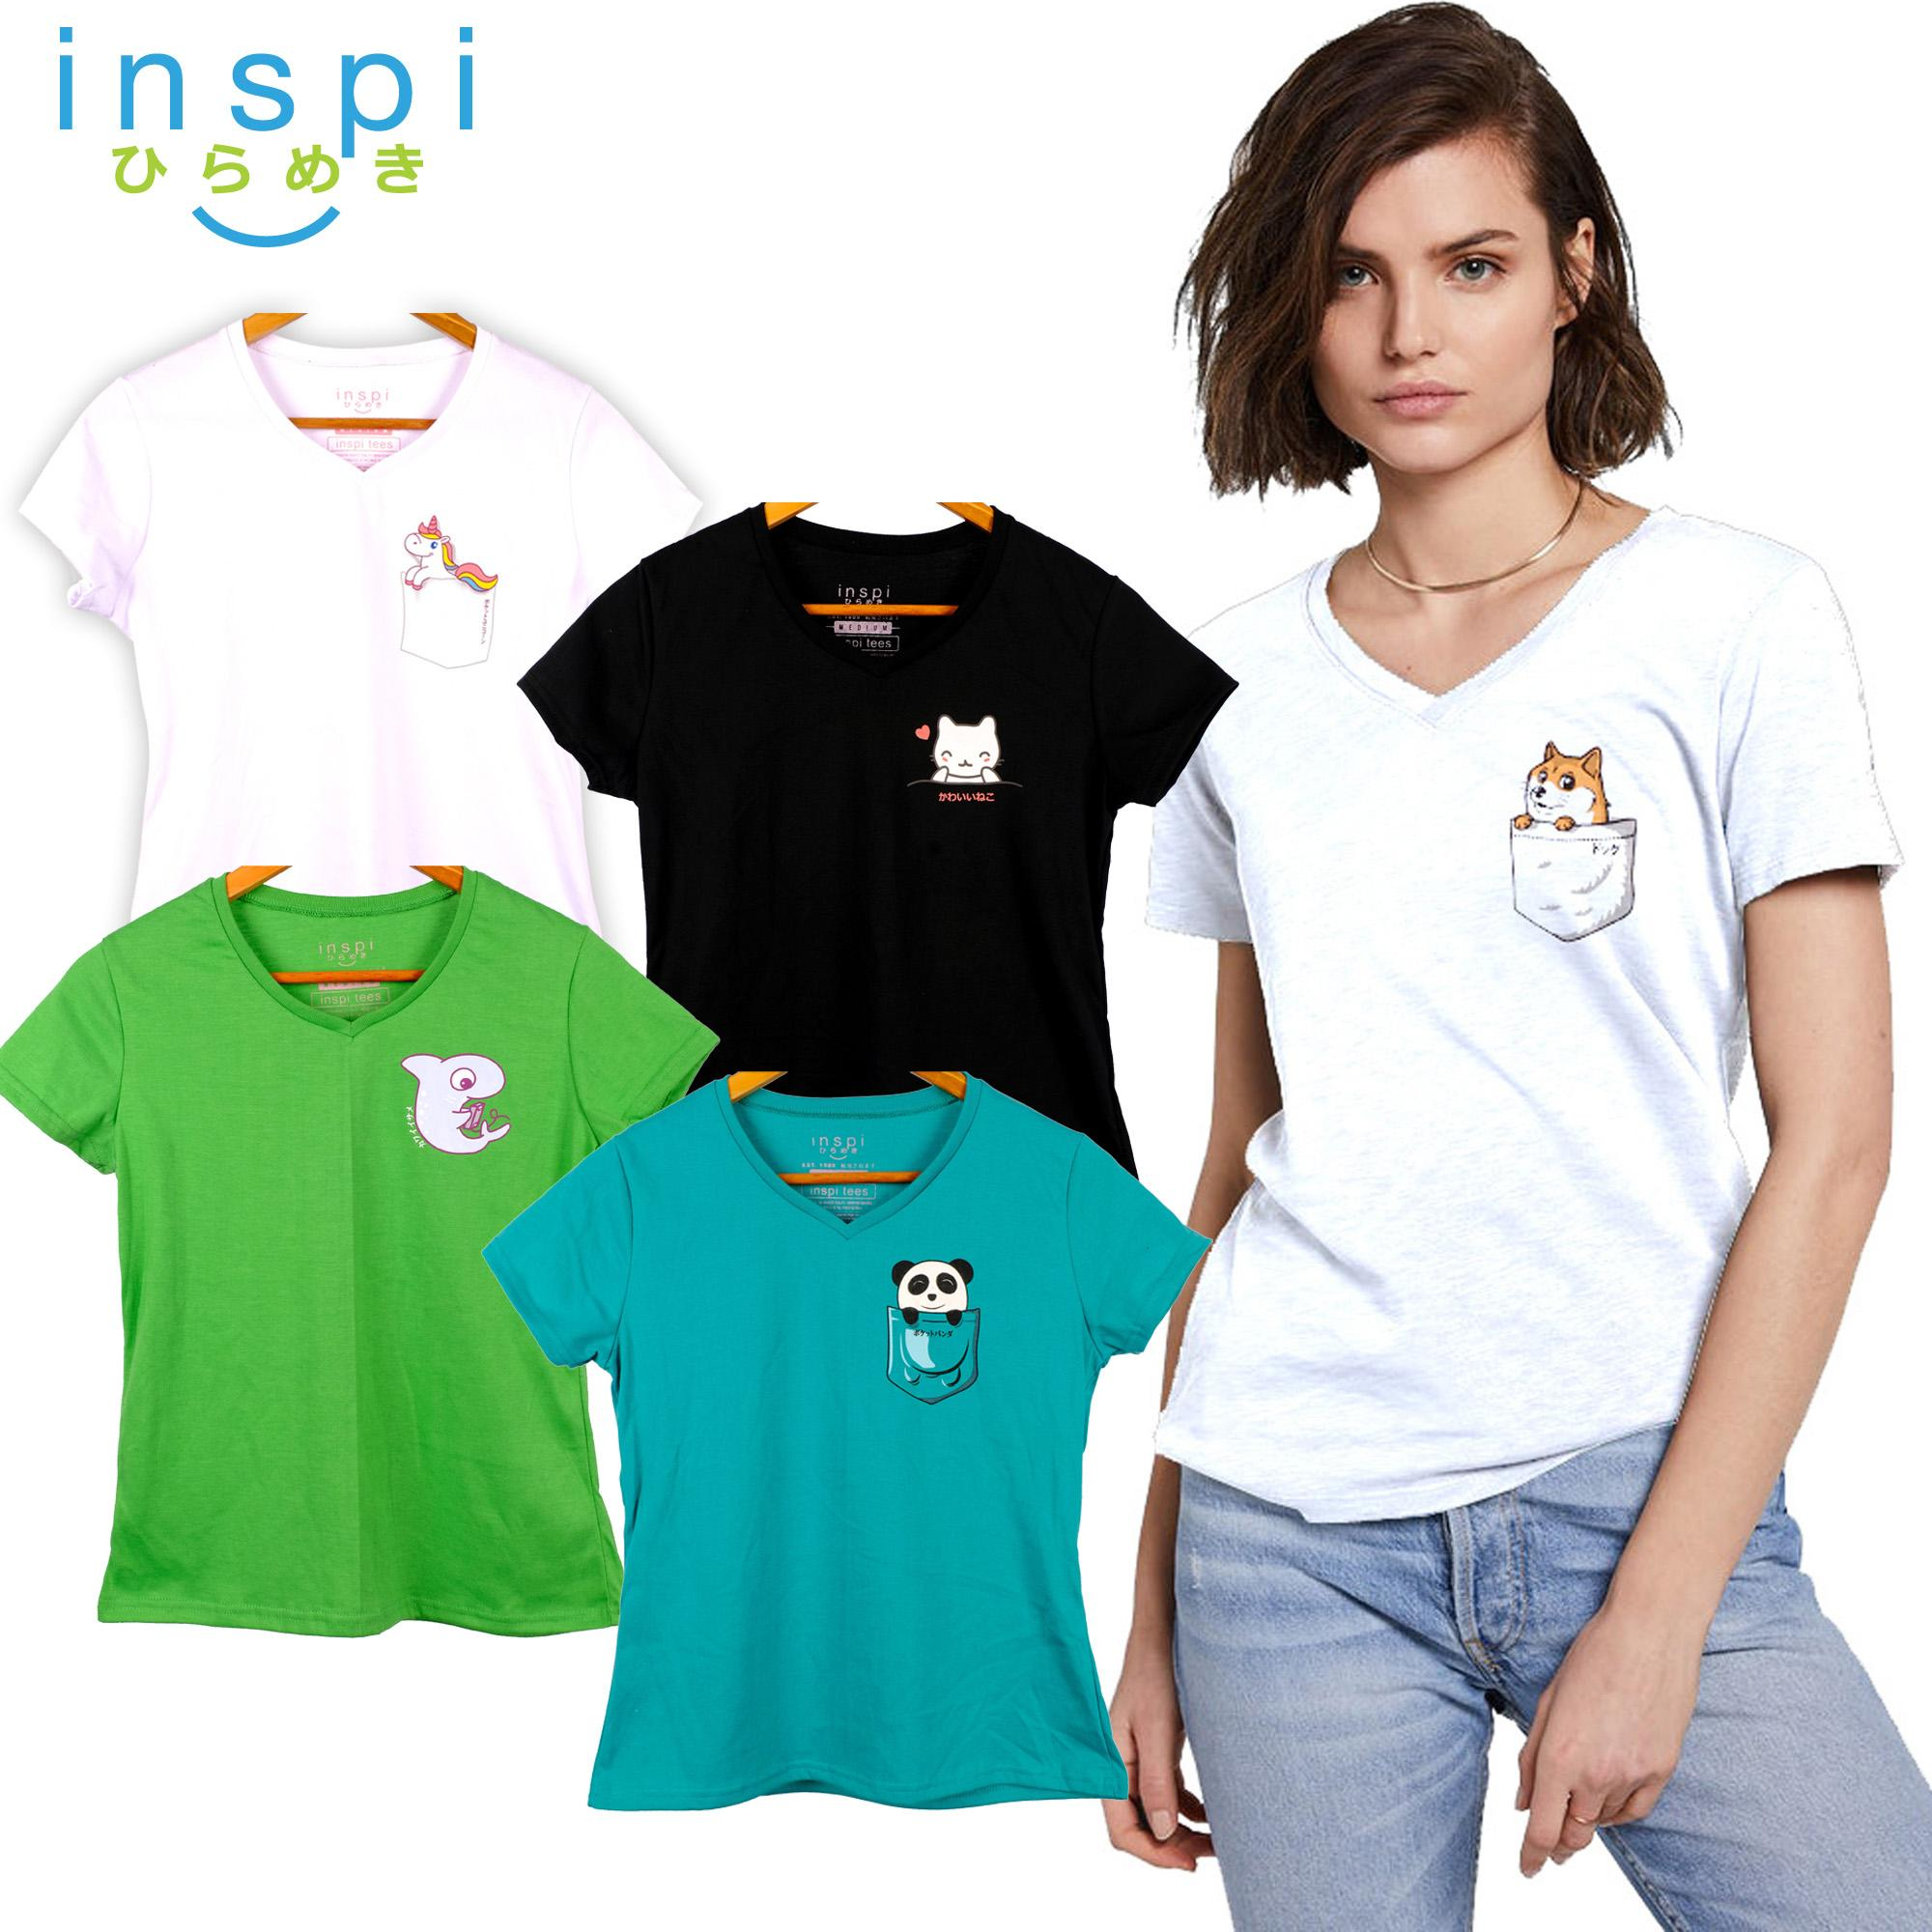 c212d418 INSPI Tees Ladies Semi Fit Pocket Friends Collection tshirt printed graphic tee  t shirt shirts tshirts